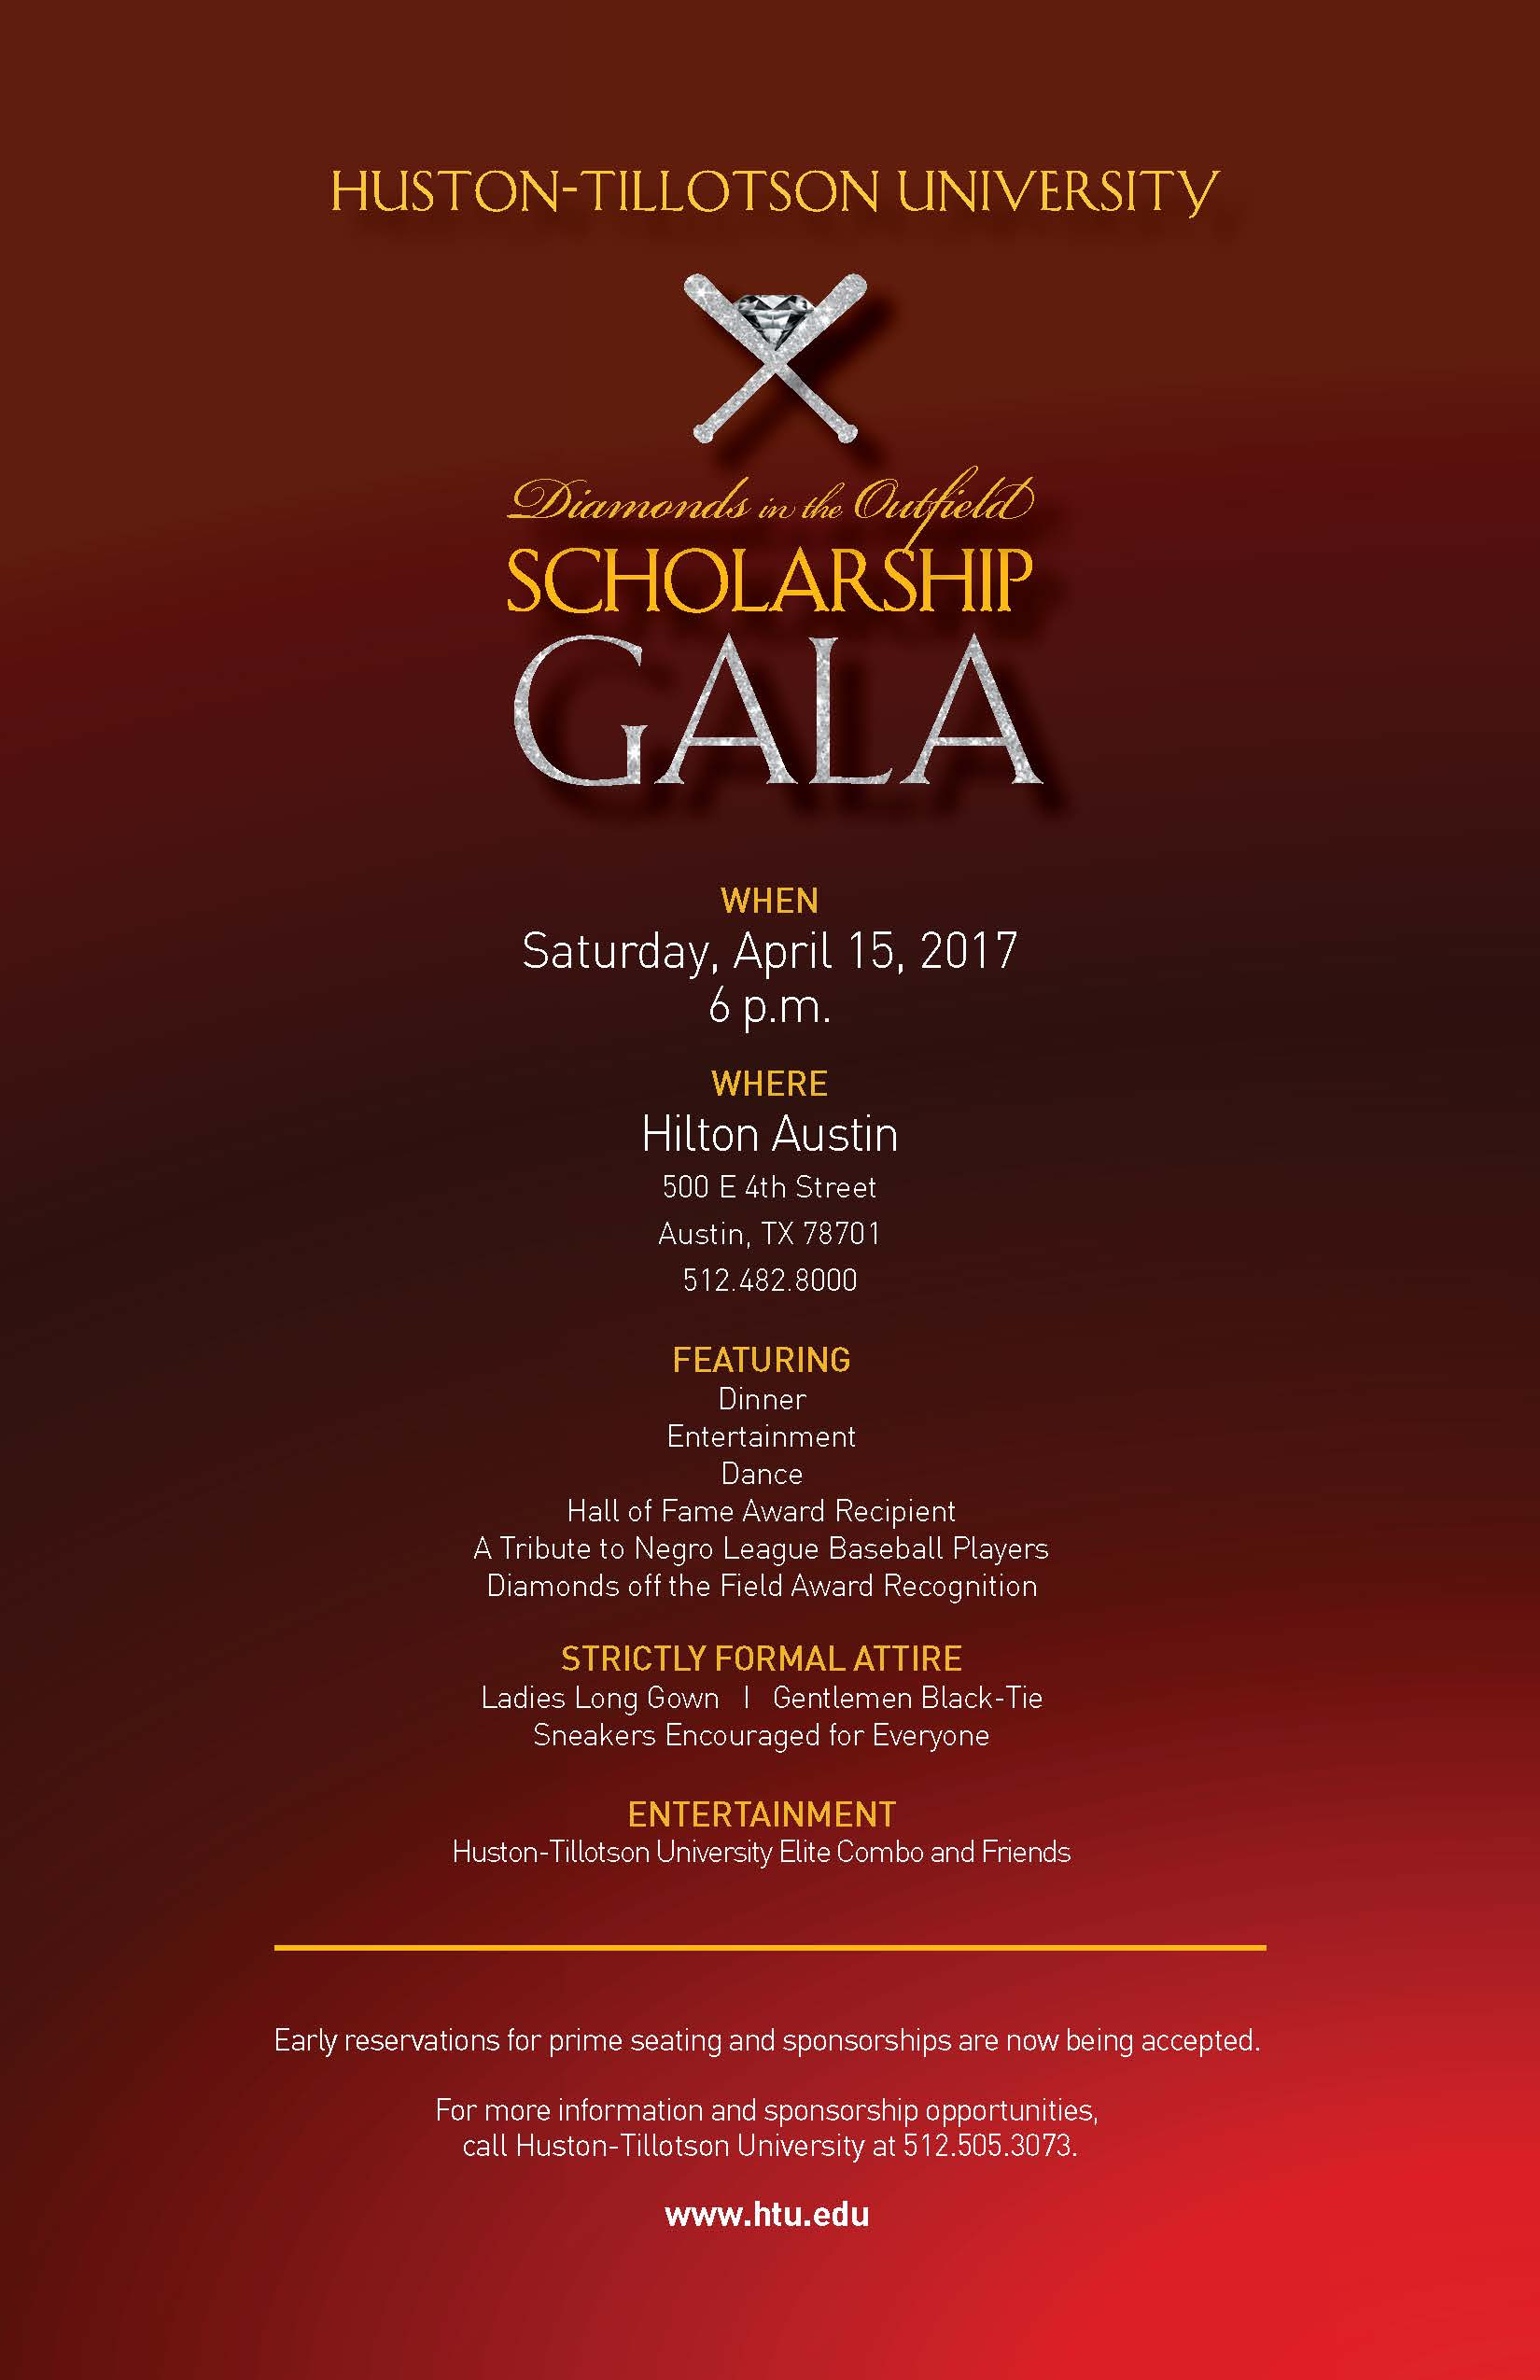 Diamonds in the Outfield Scholarship Gala